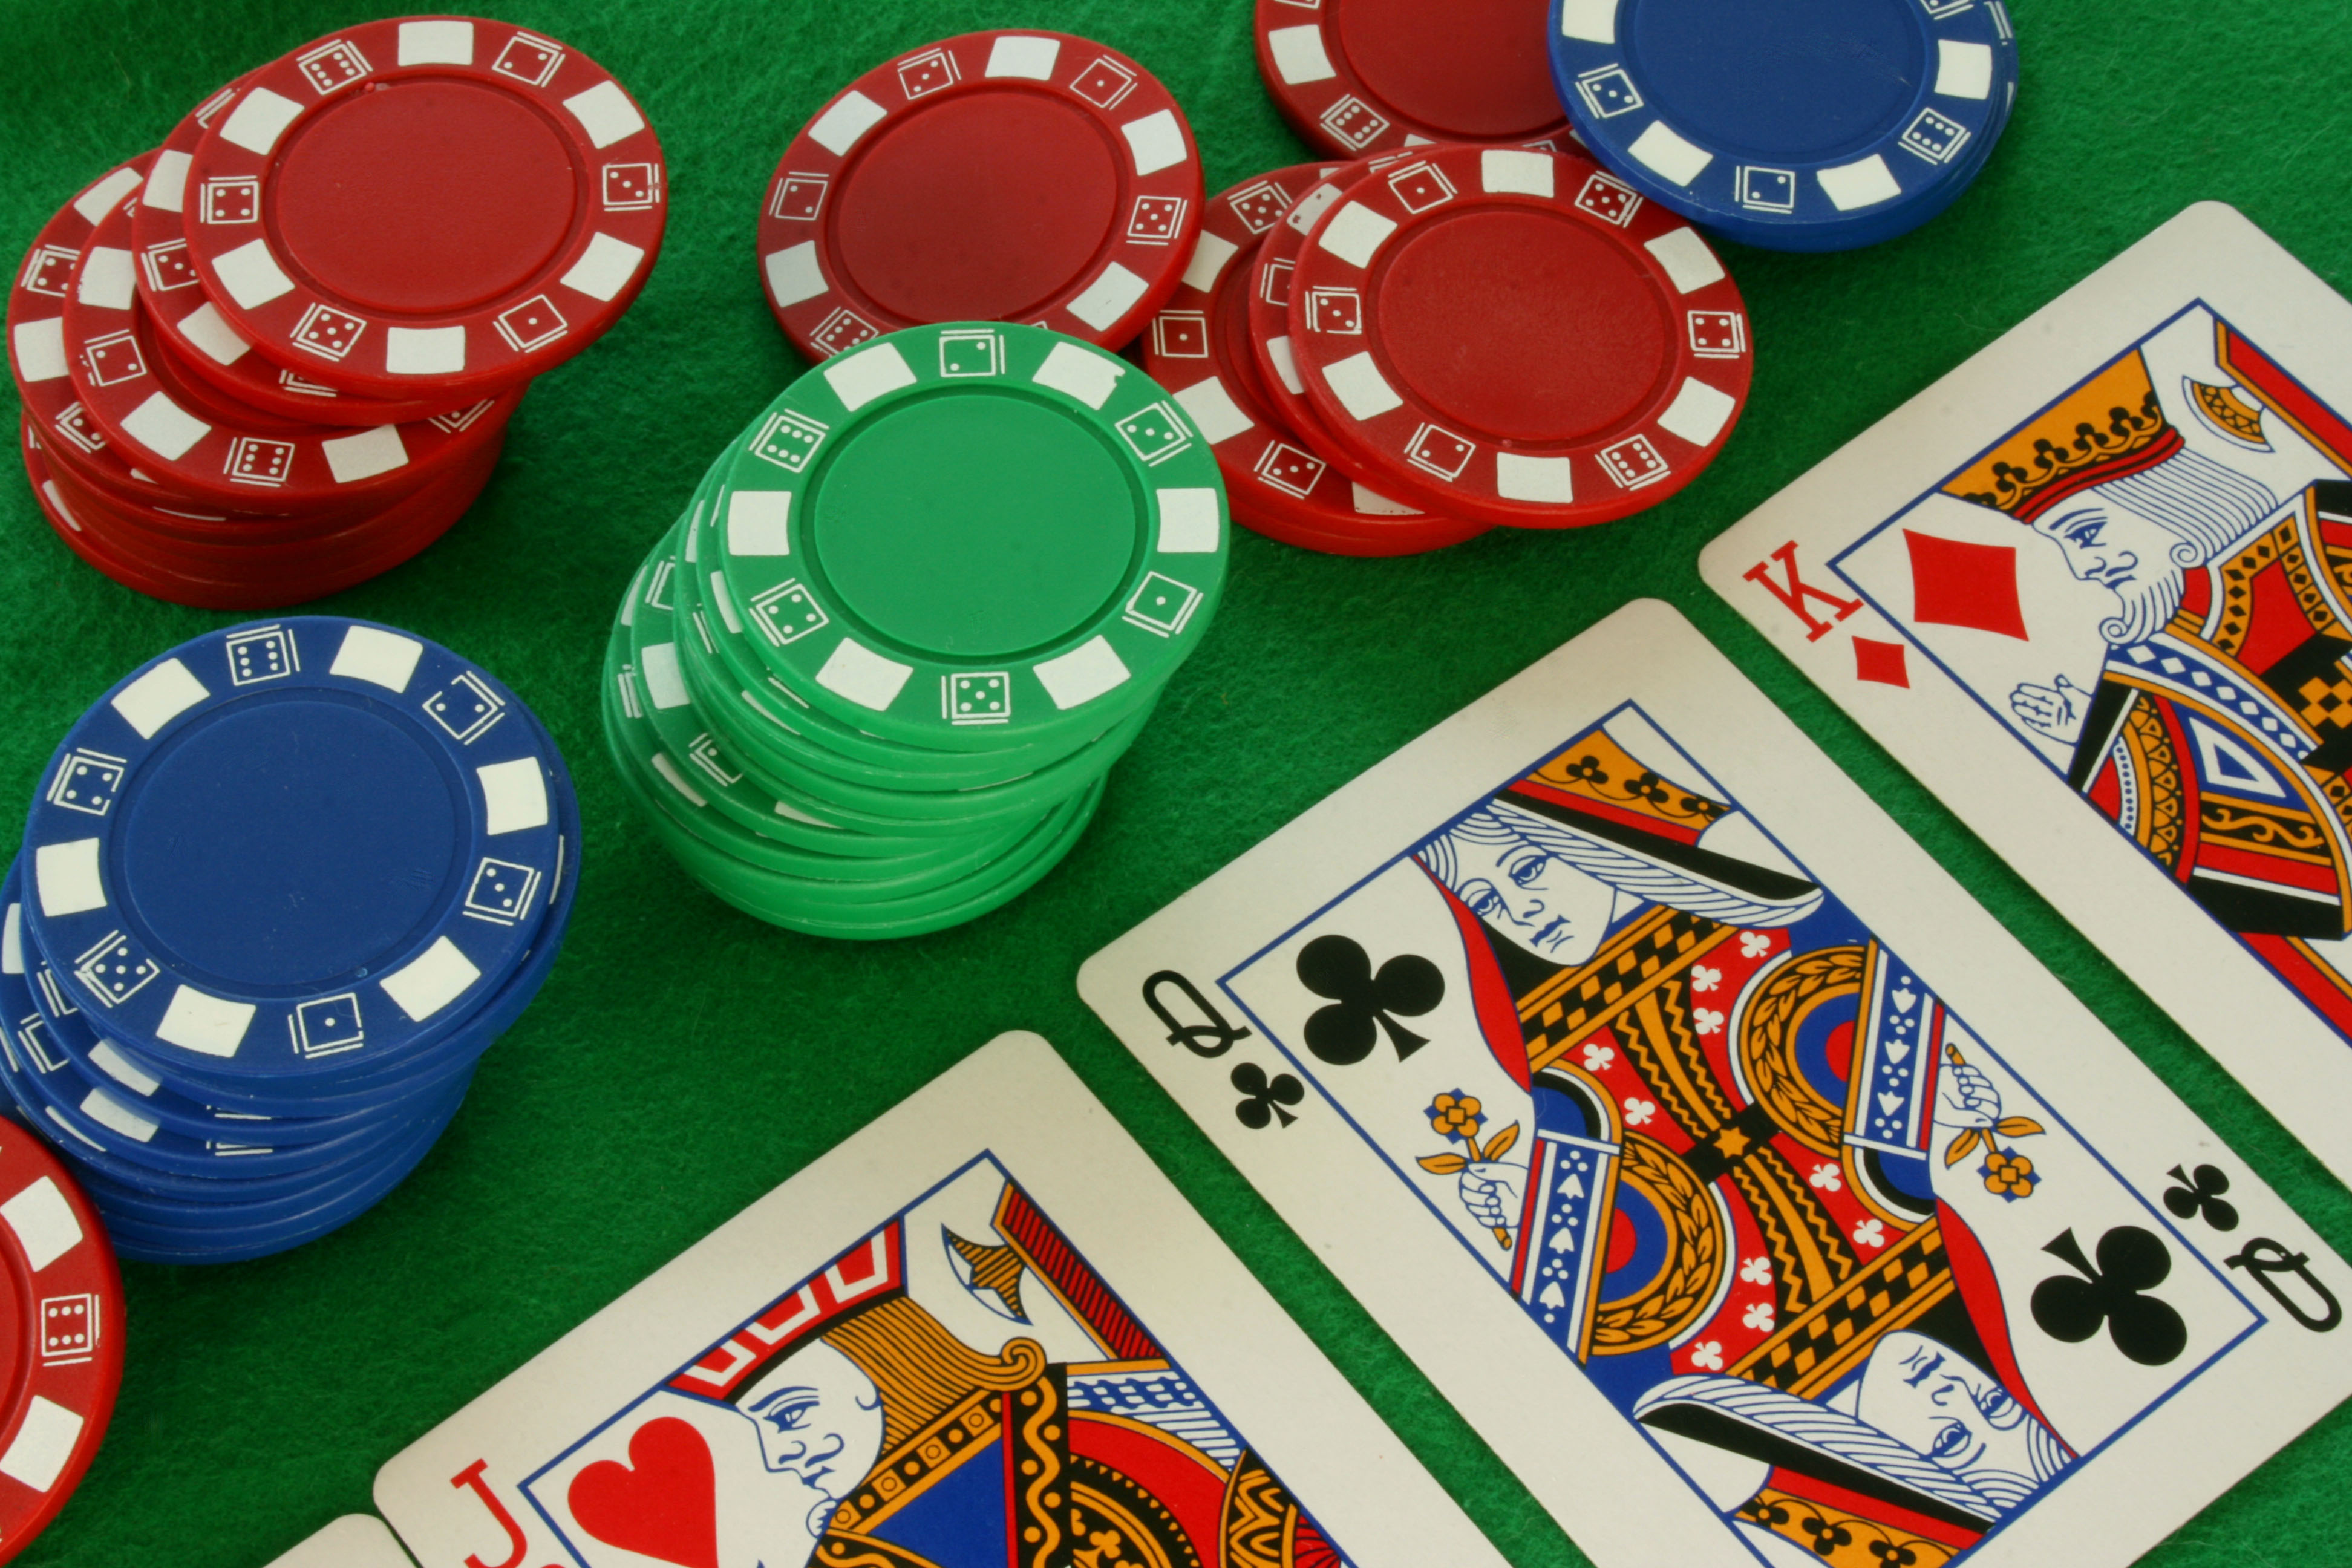 Free chips duc casino games